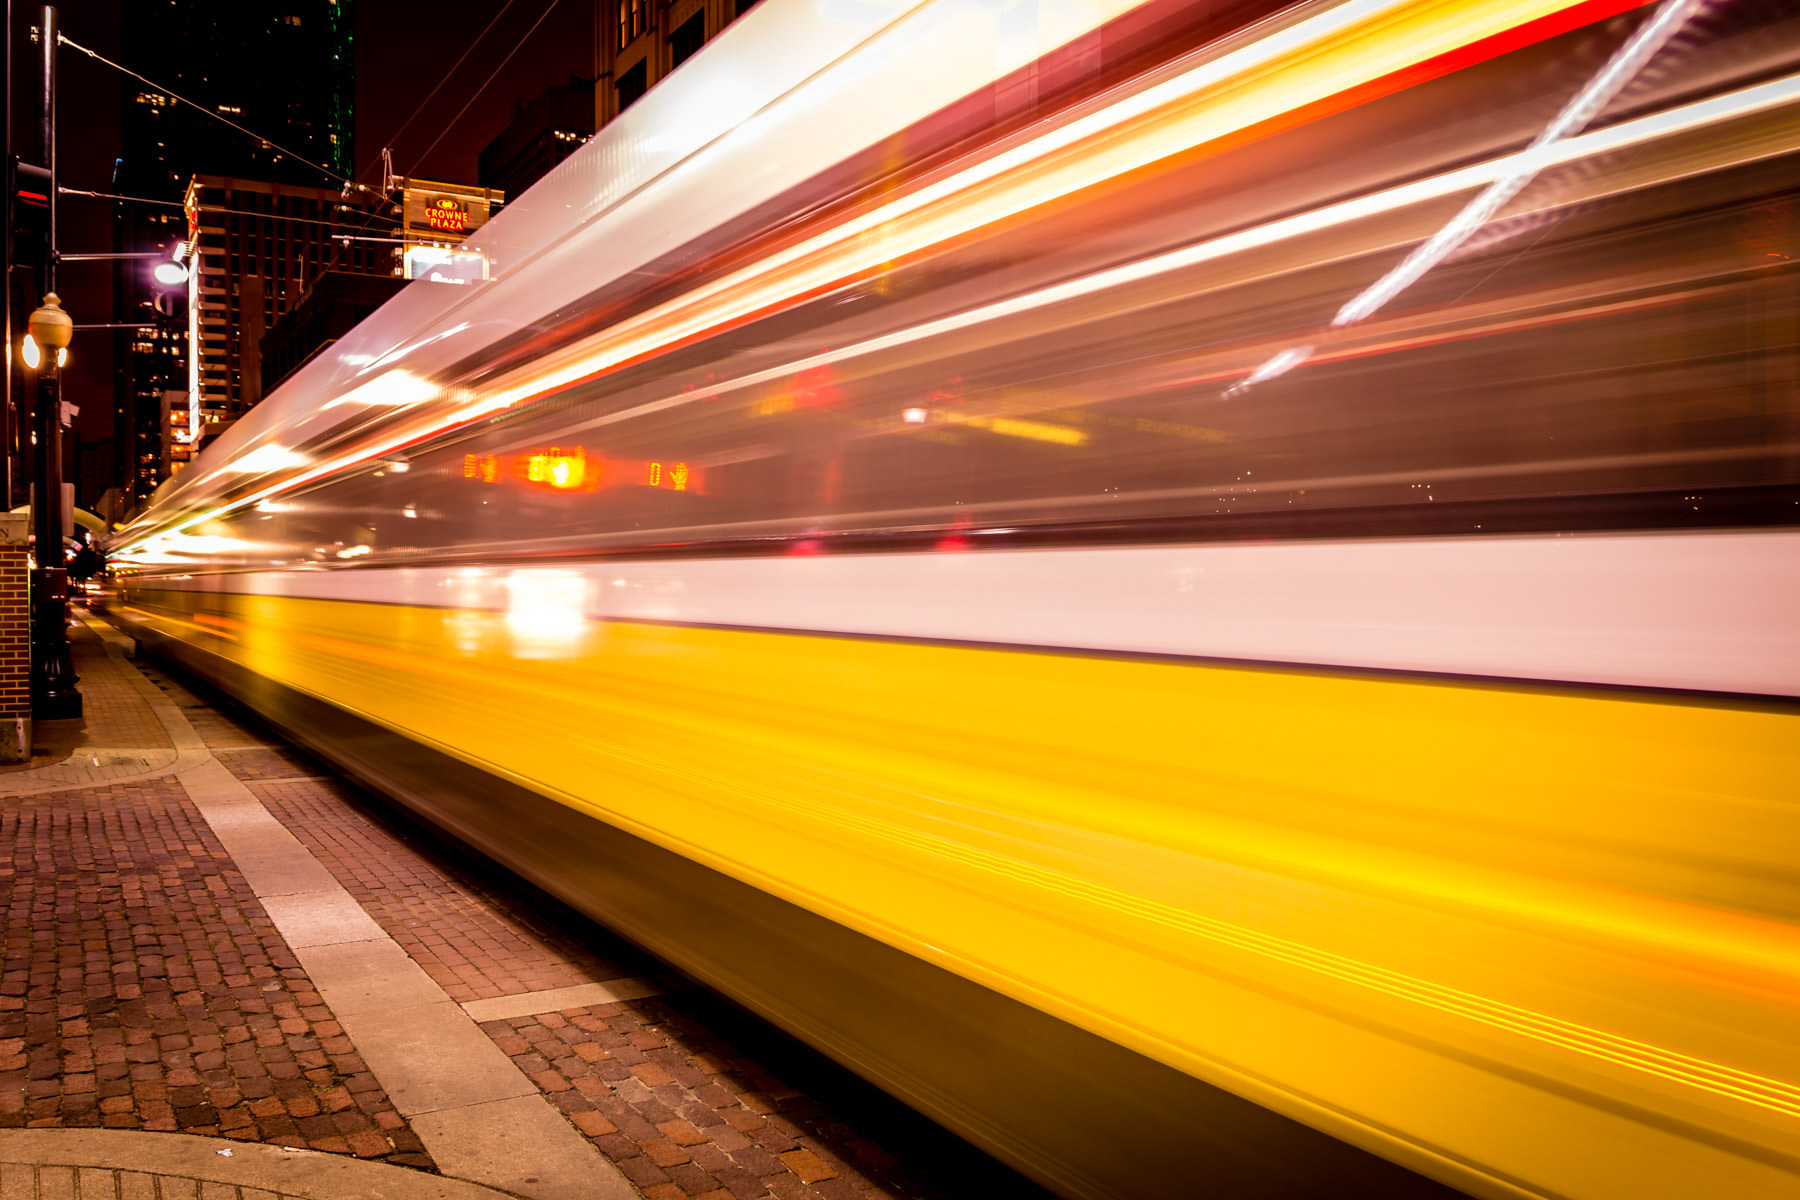 A DART train speeds through Downtown Dallas in this long exposure night shot.